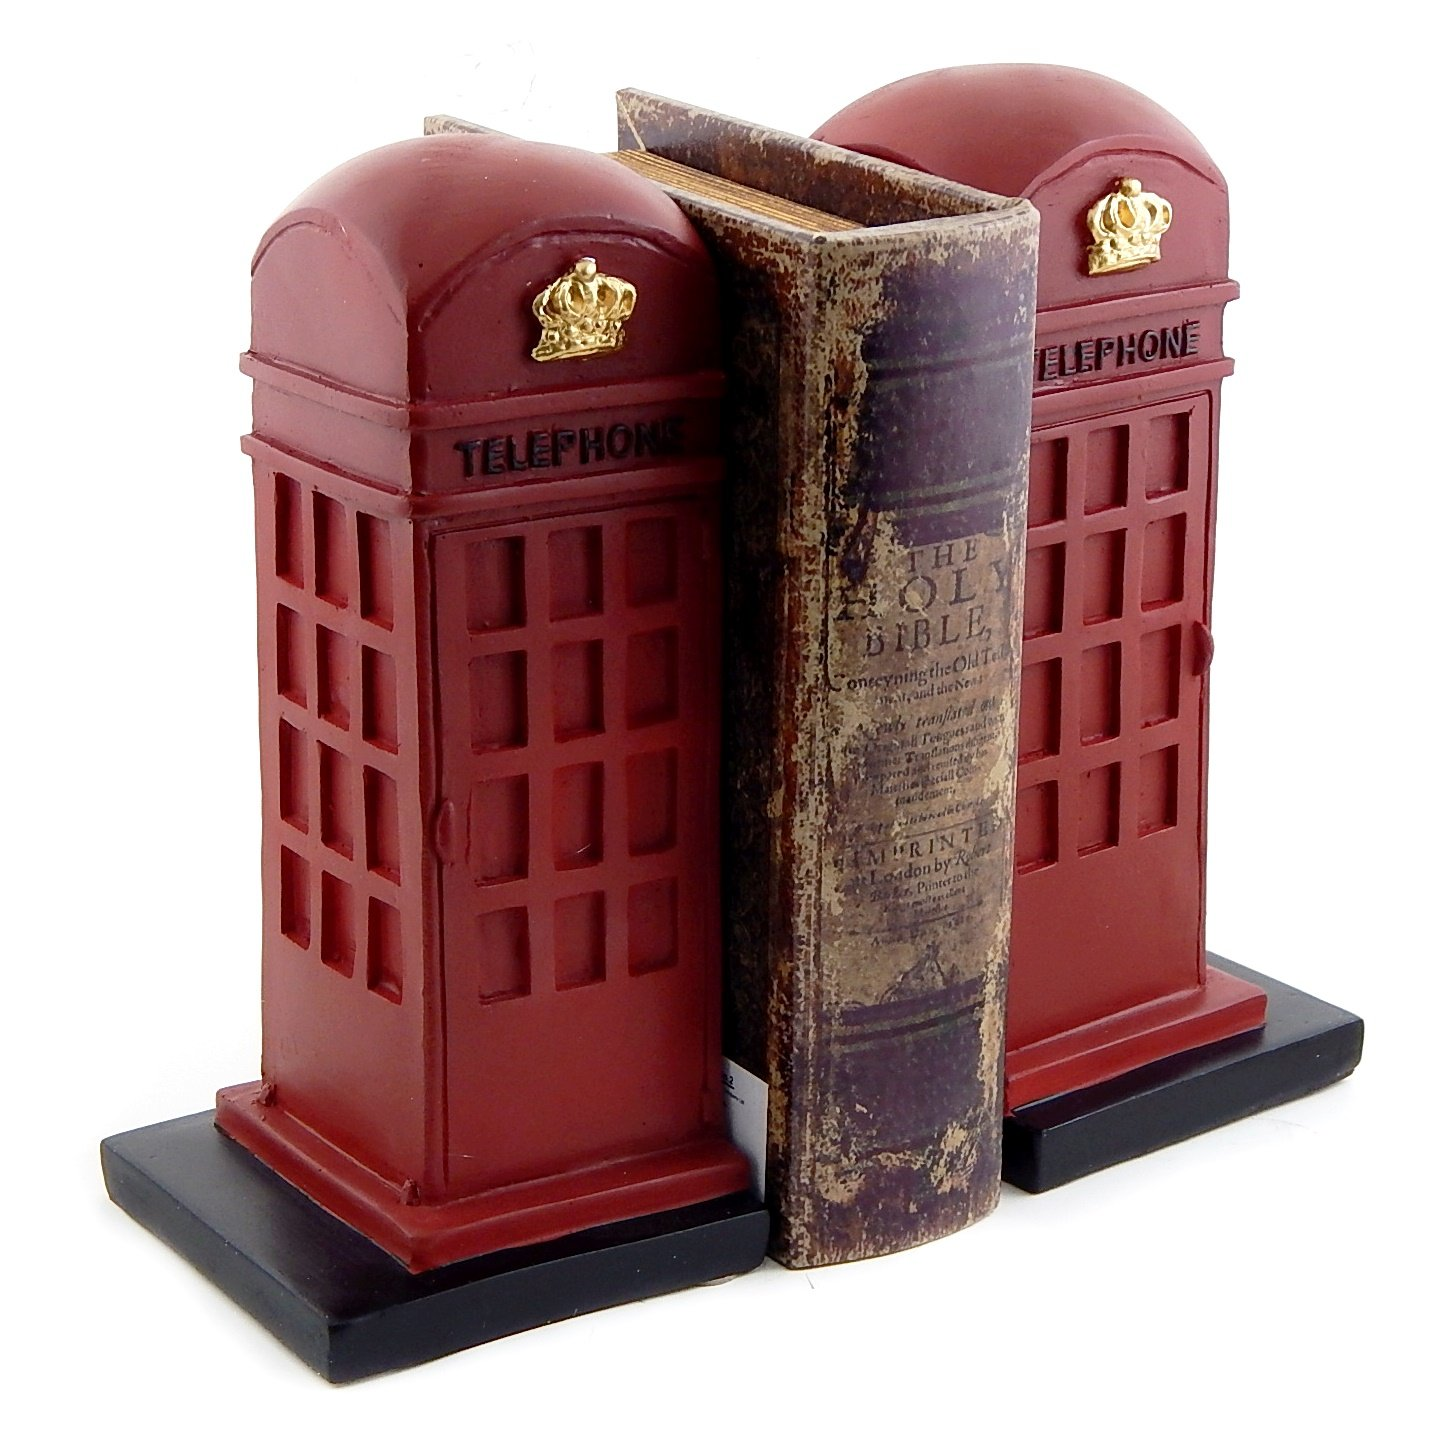 Bellaa 25730 London Telephone Bookends British Phone Booth 9in